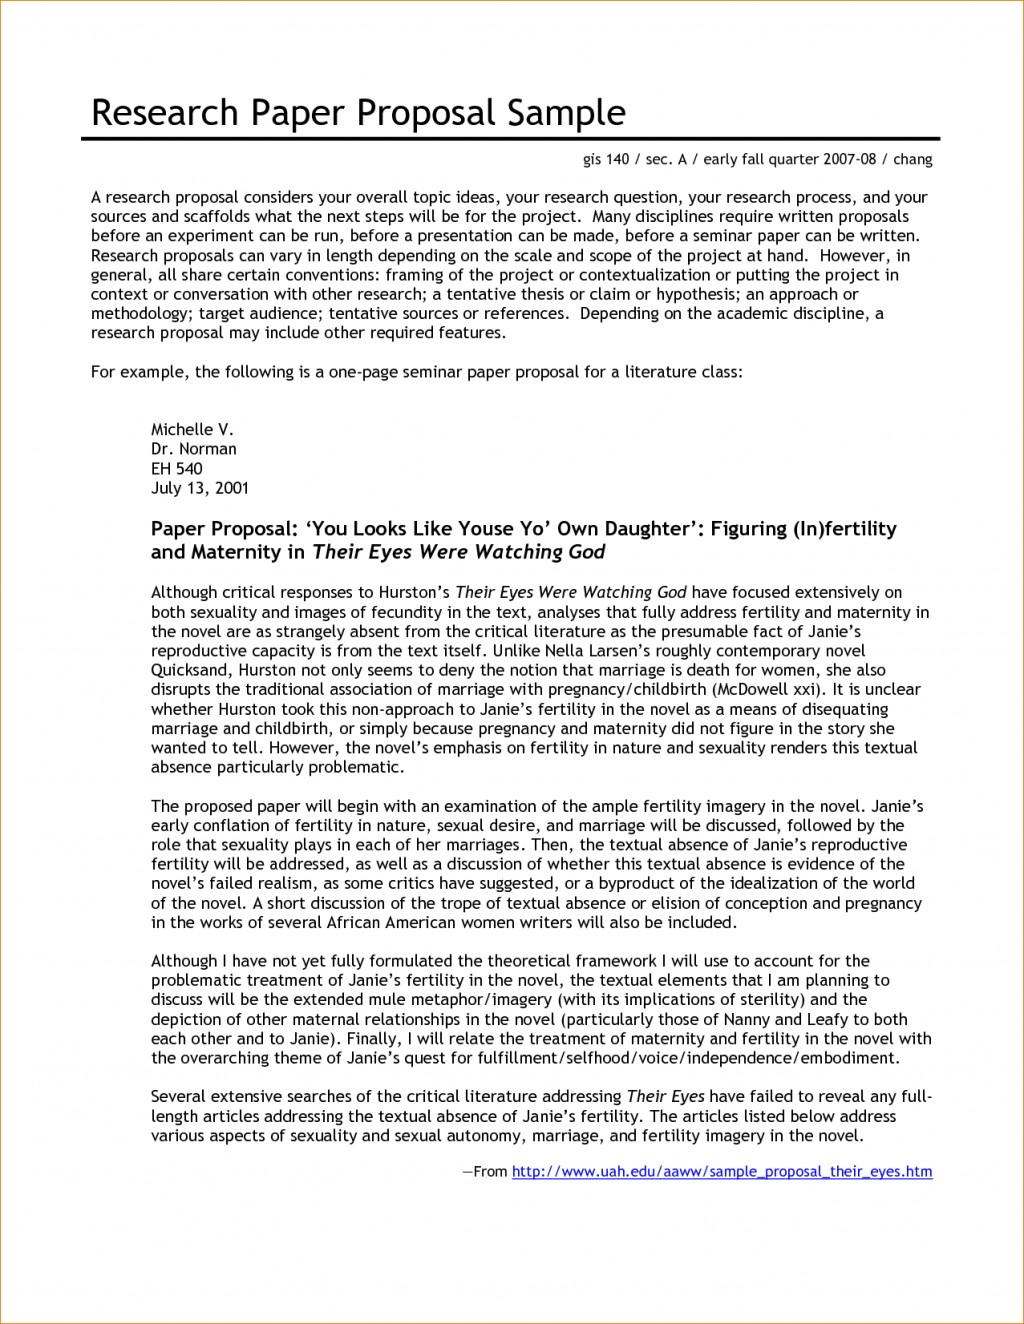 008 Essay Example What Is Proposal Research Paper Template Top A Argument The Purpose Of Large